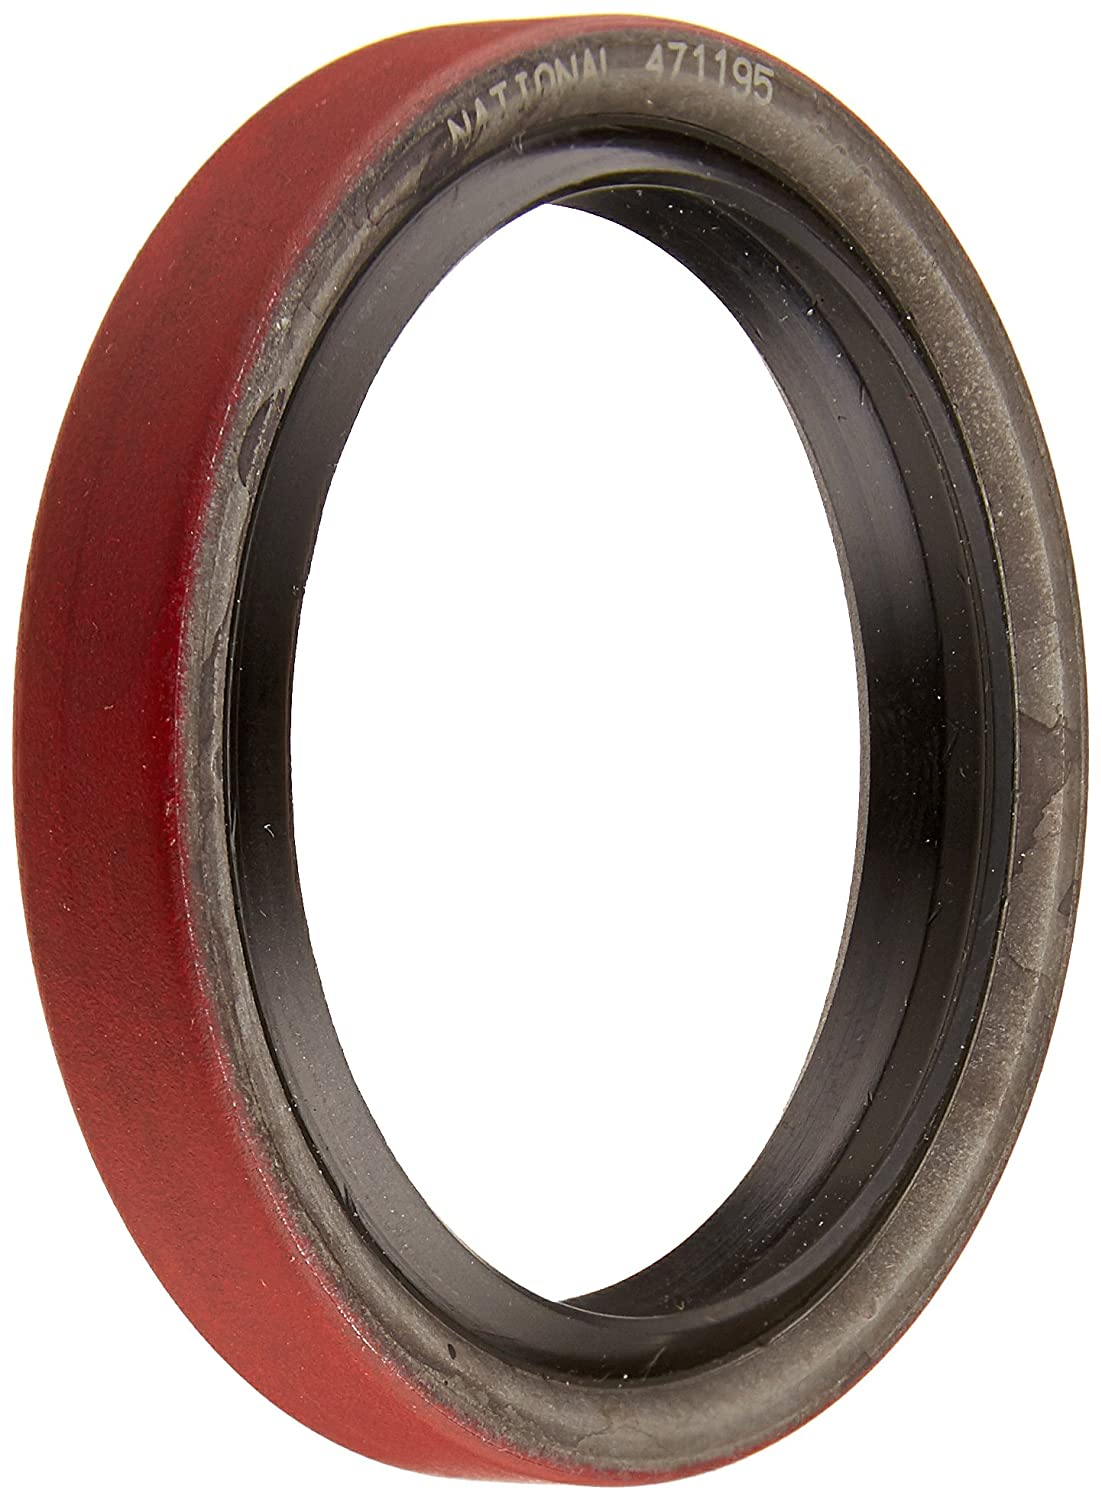 National Oil Seals 471195 Wheel Oil Seal 471195-NAT